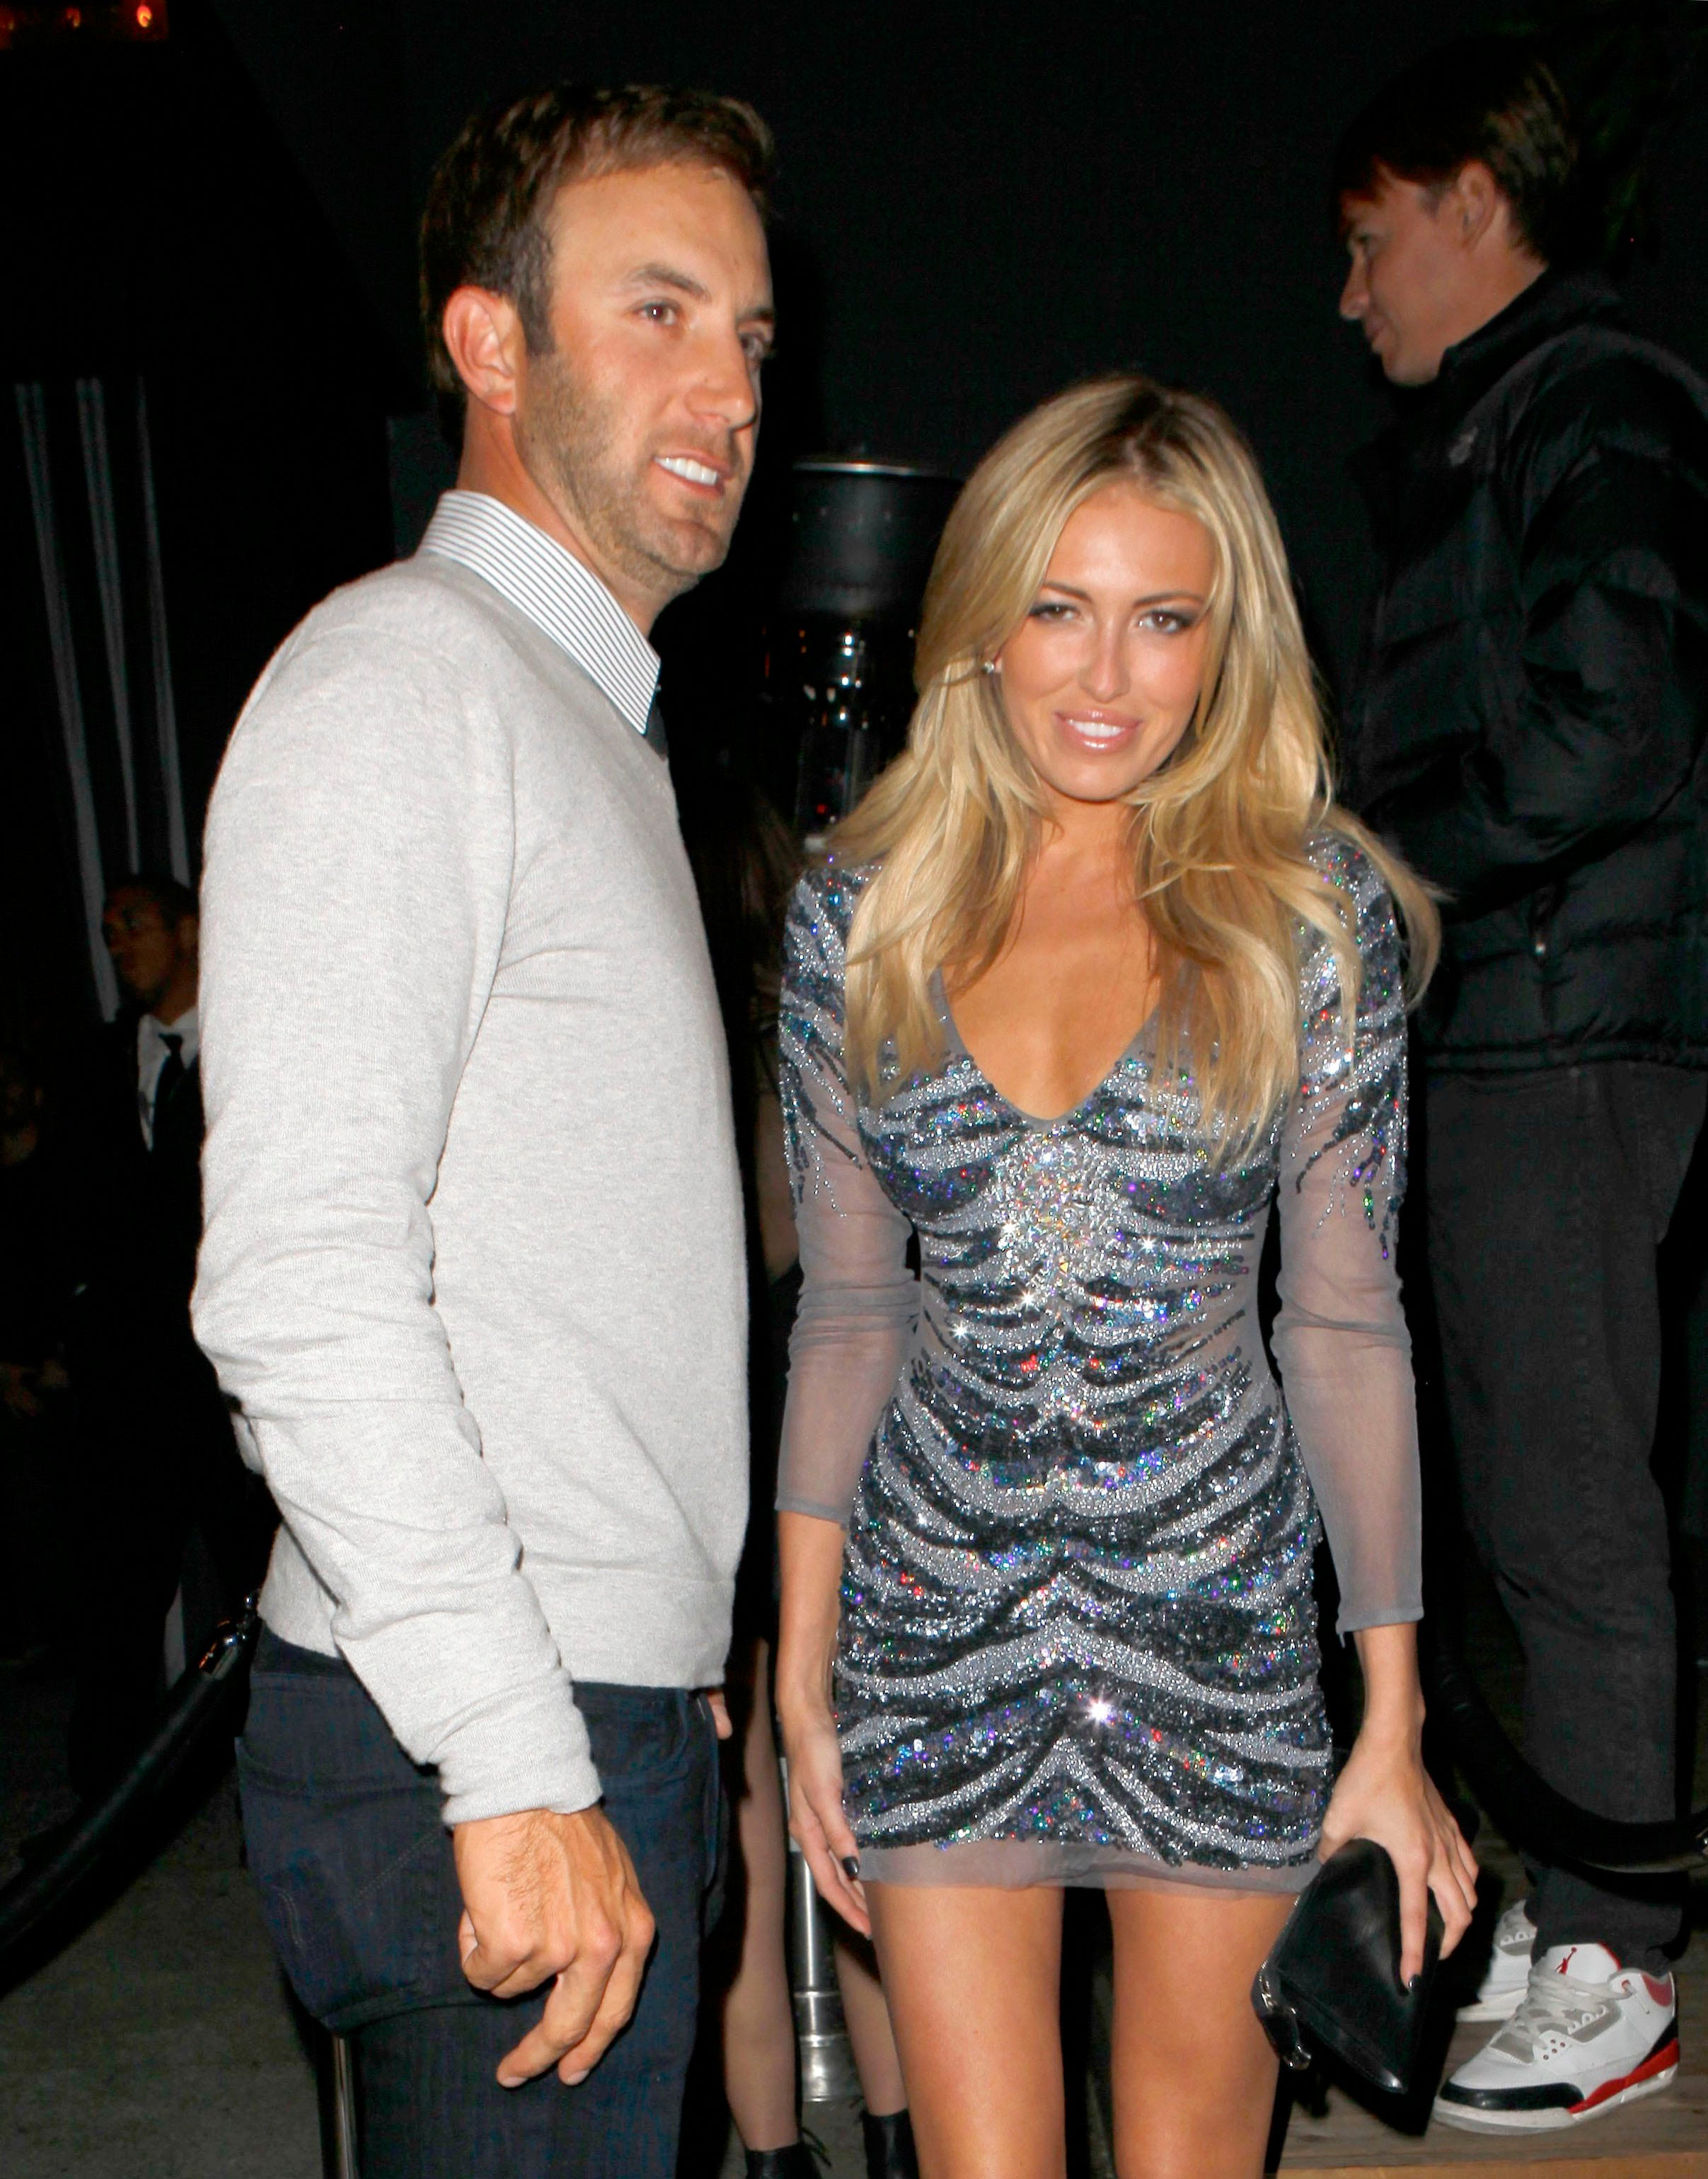 Discussion on this topic: Kanakam, paulina-gretzky/